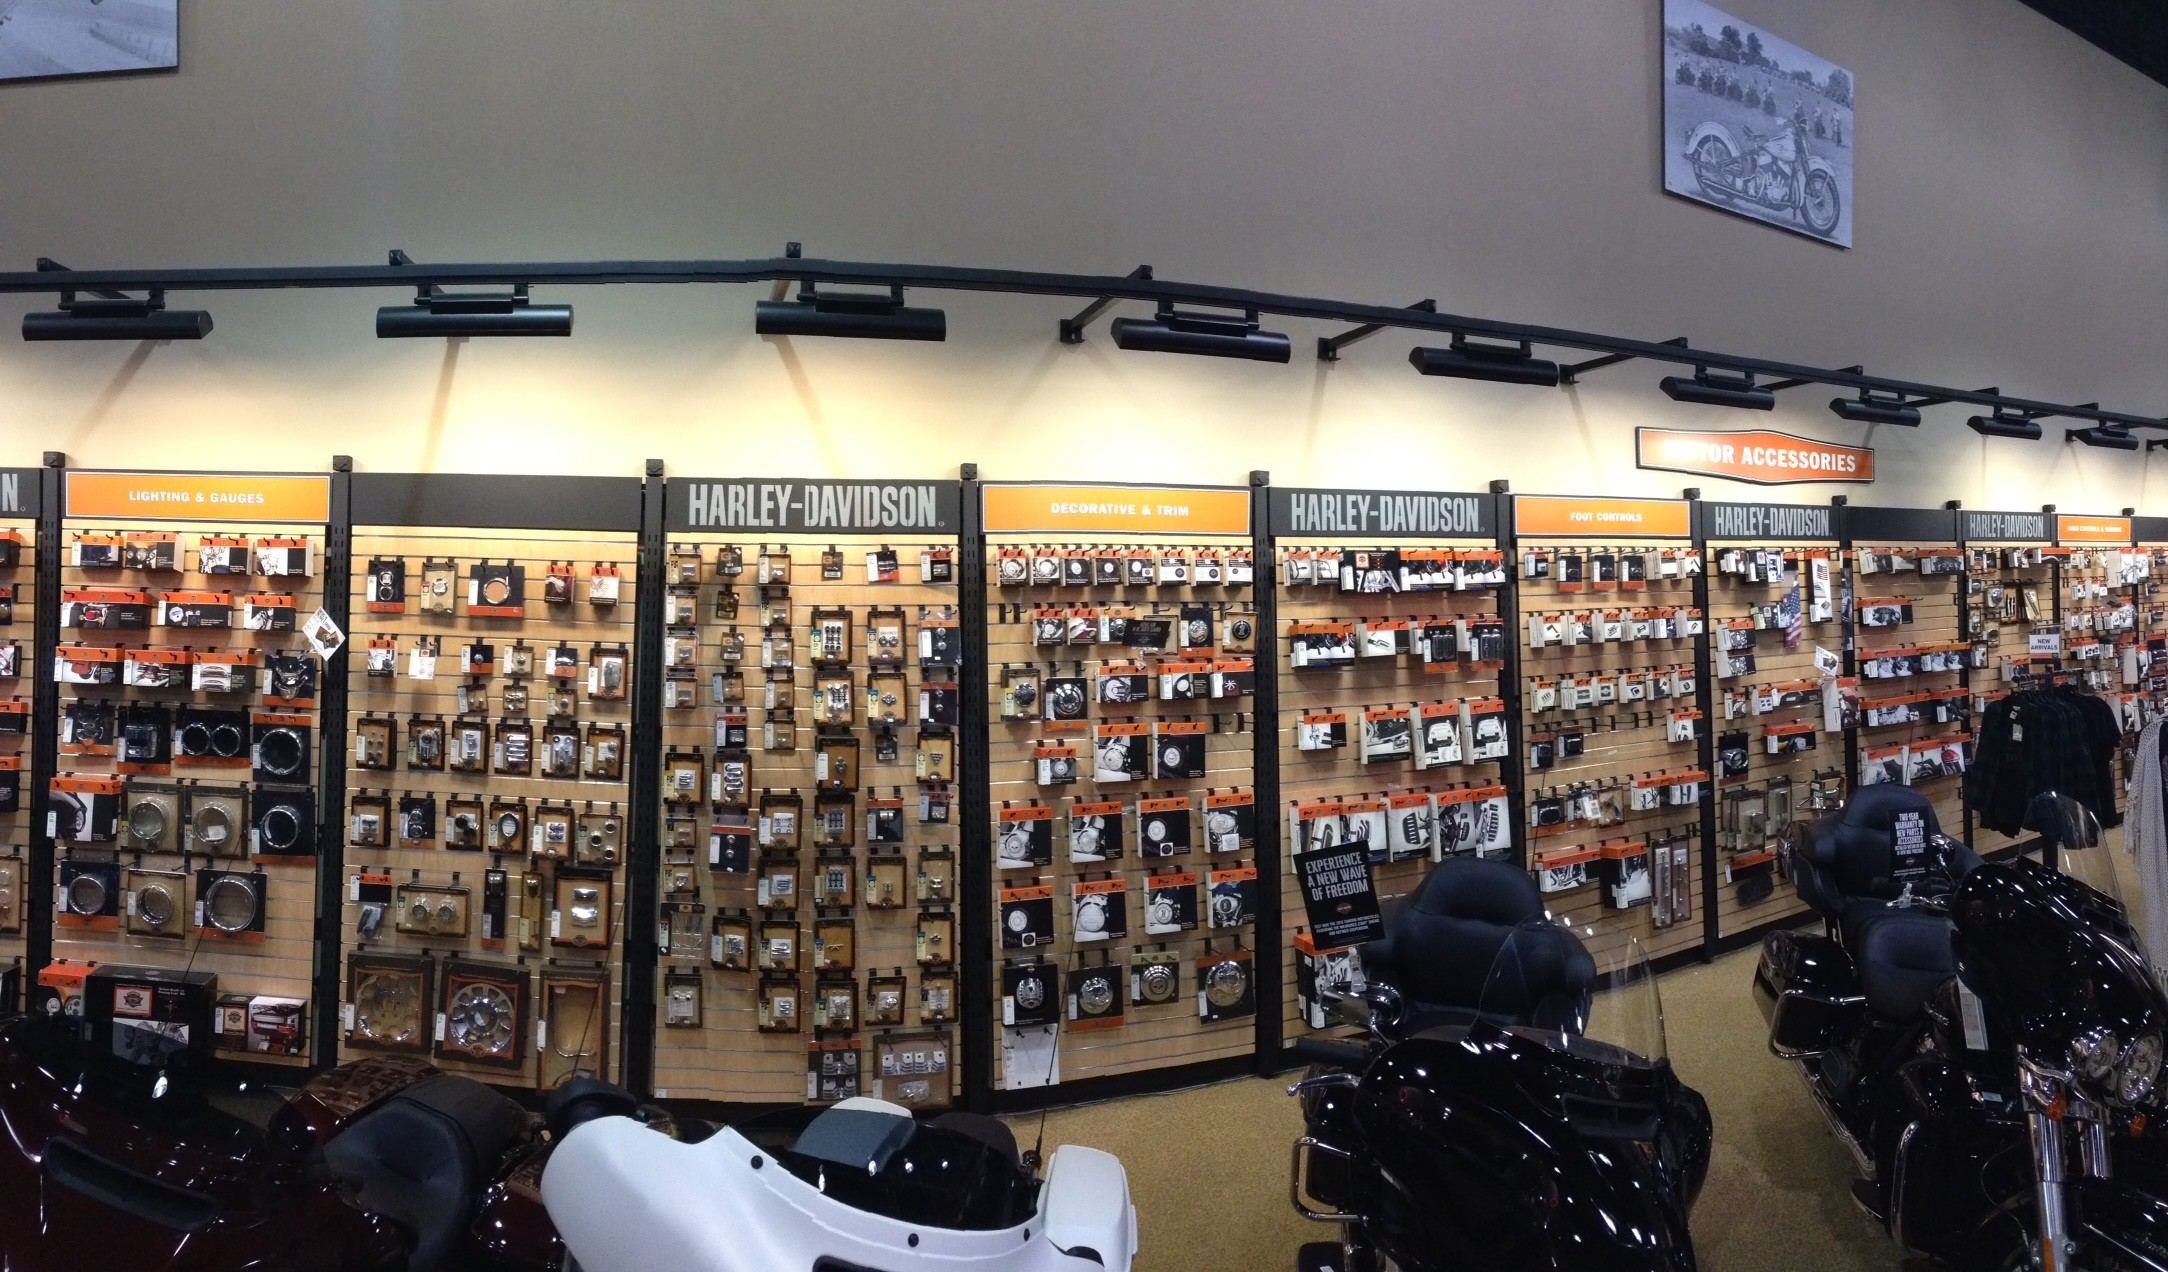 mountain state harley davidson parts accessories department